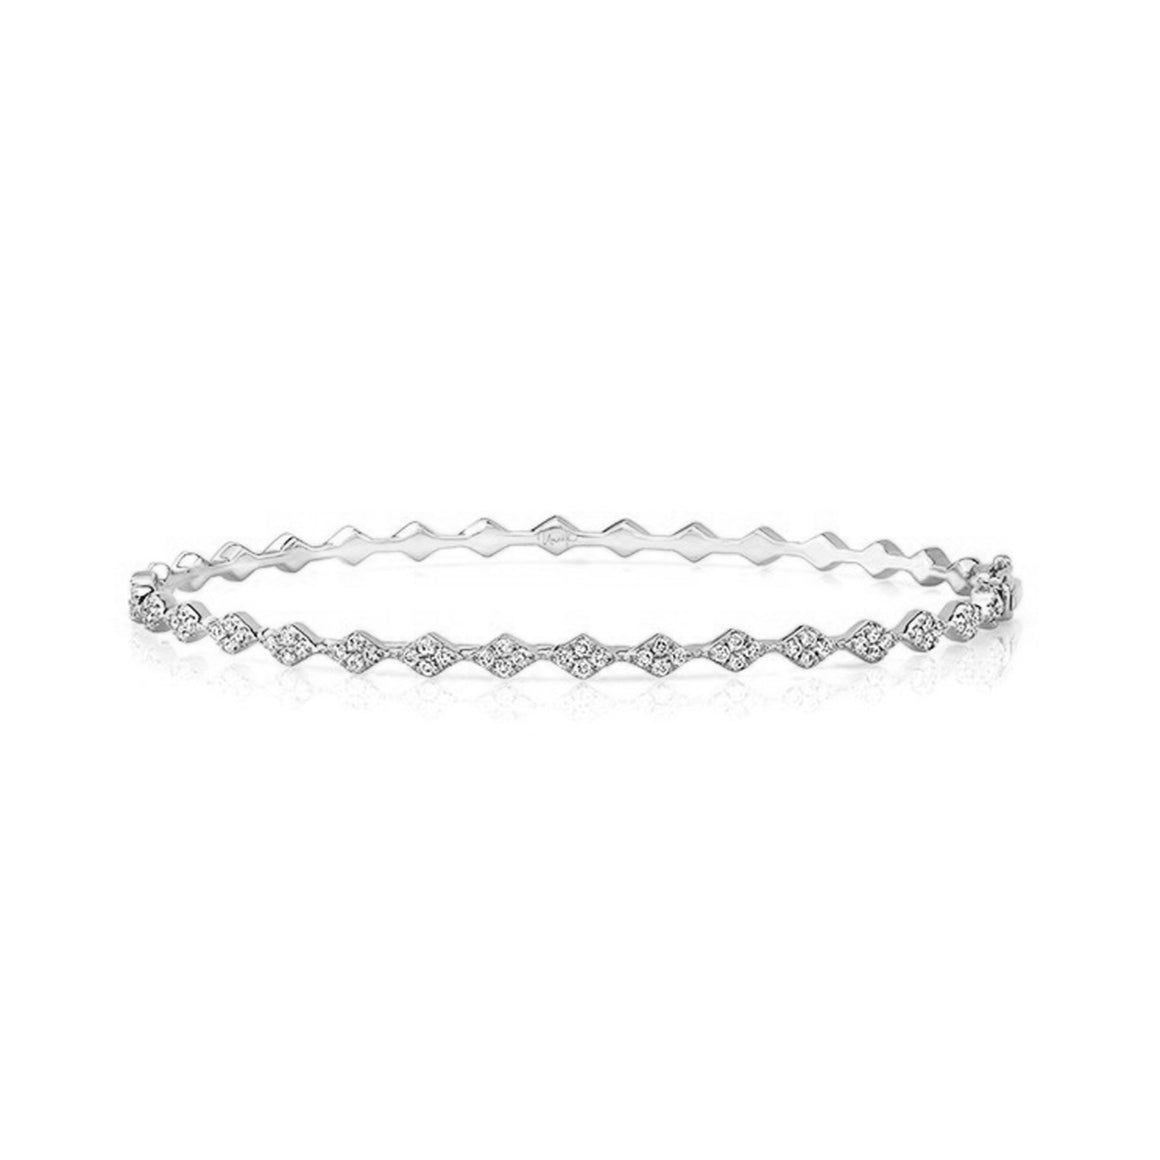 White Gold Tinseltown Bangle - Lesley Ann Jewels